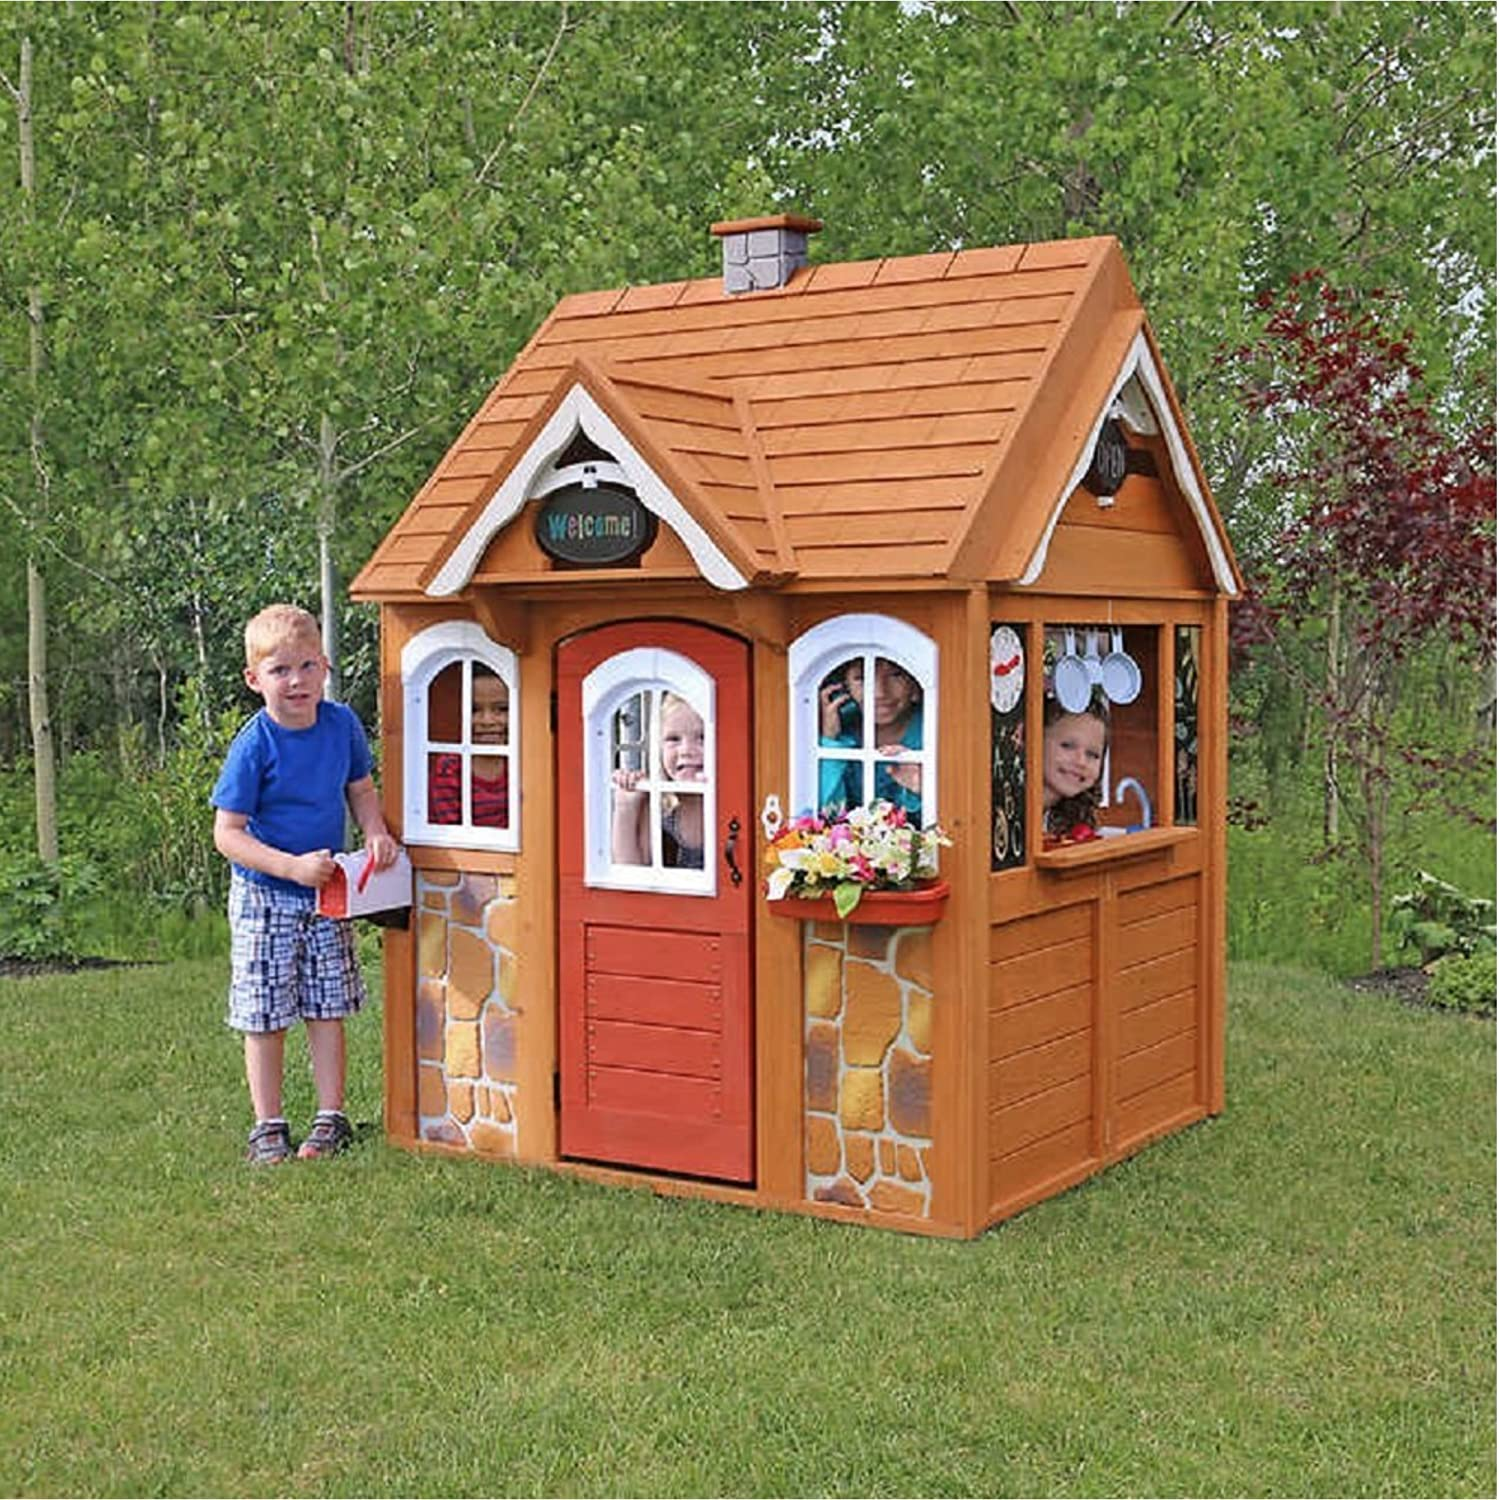 Top 11 Best Kids Outdoor Playhouses in 2020 Reviews 4